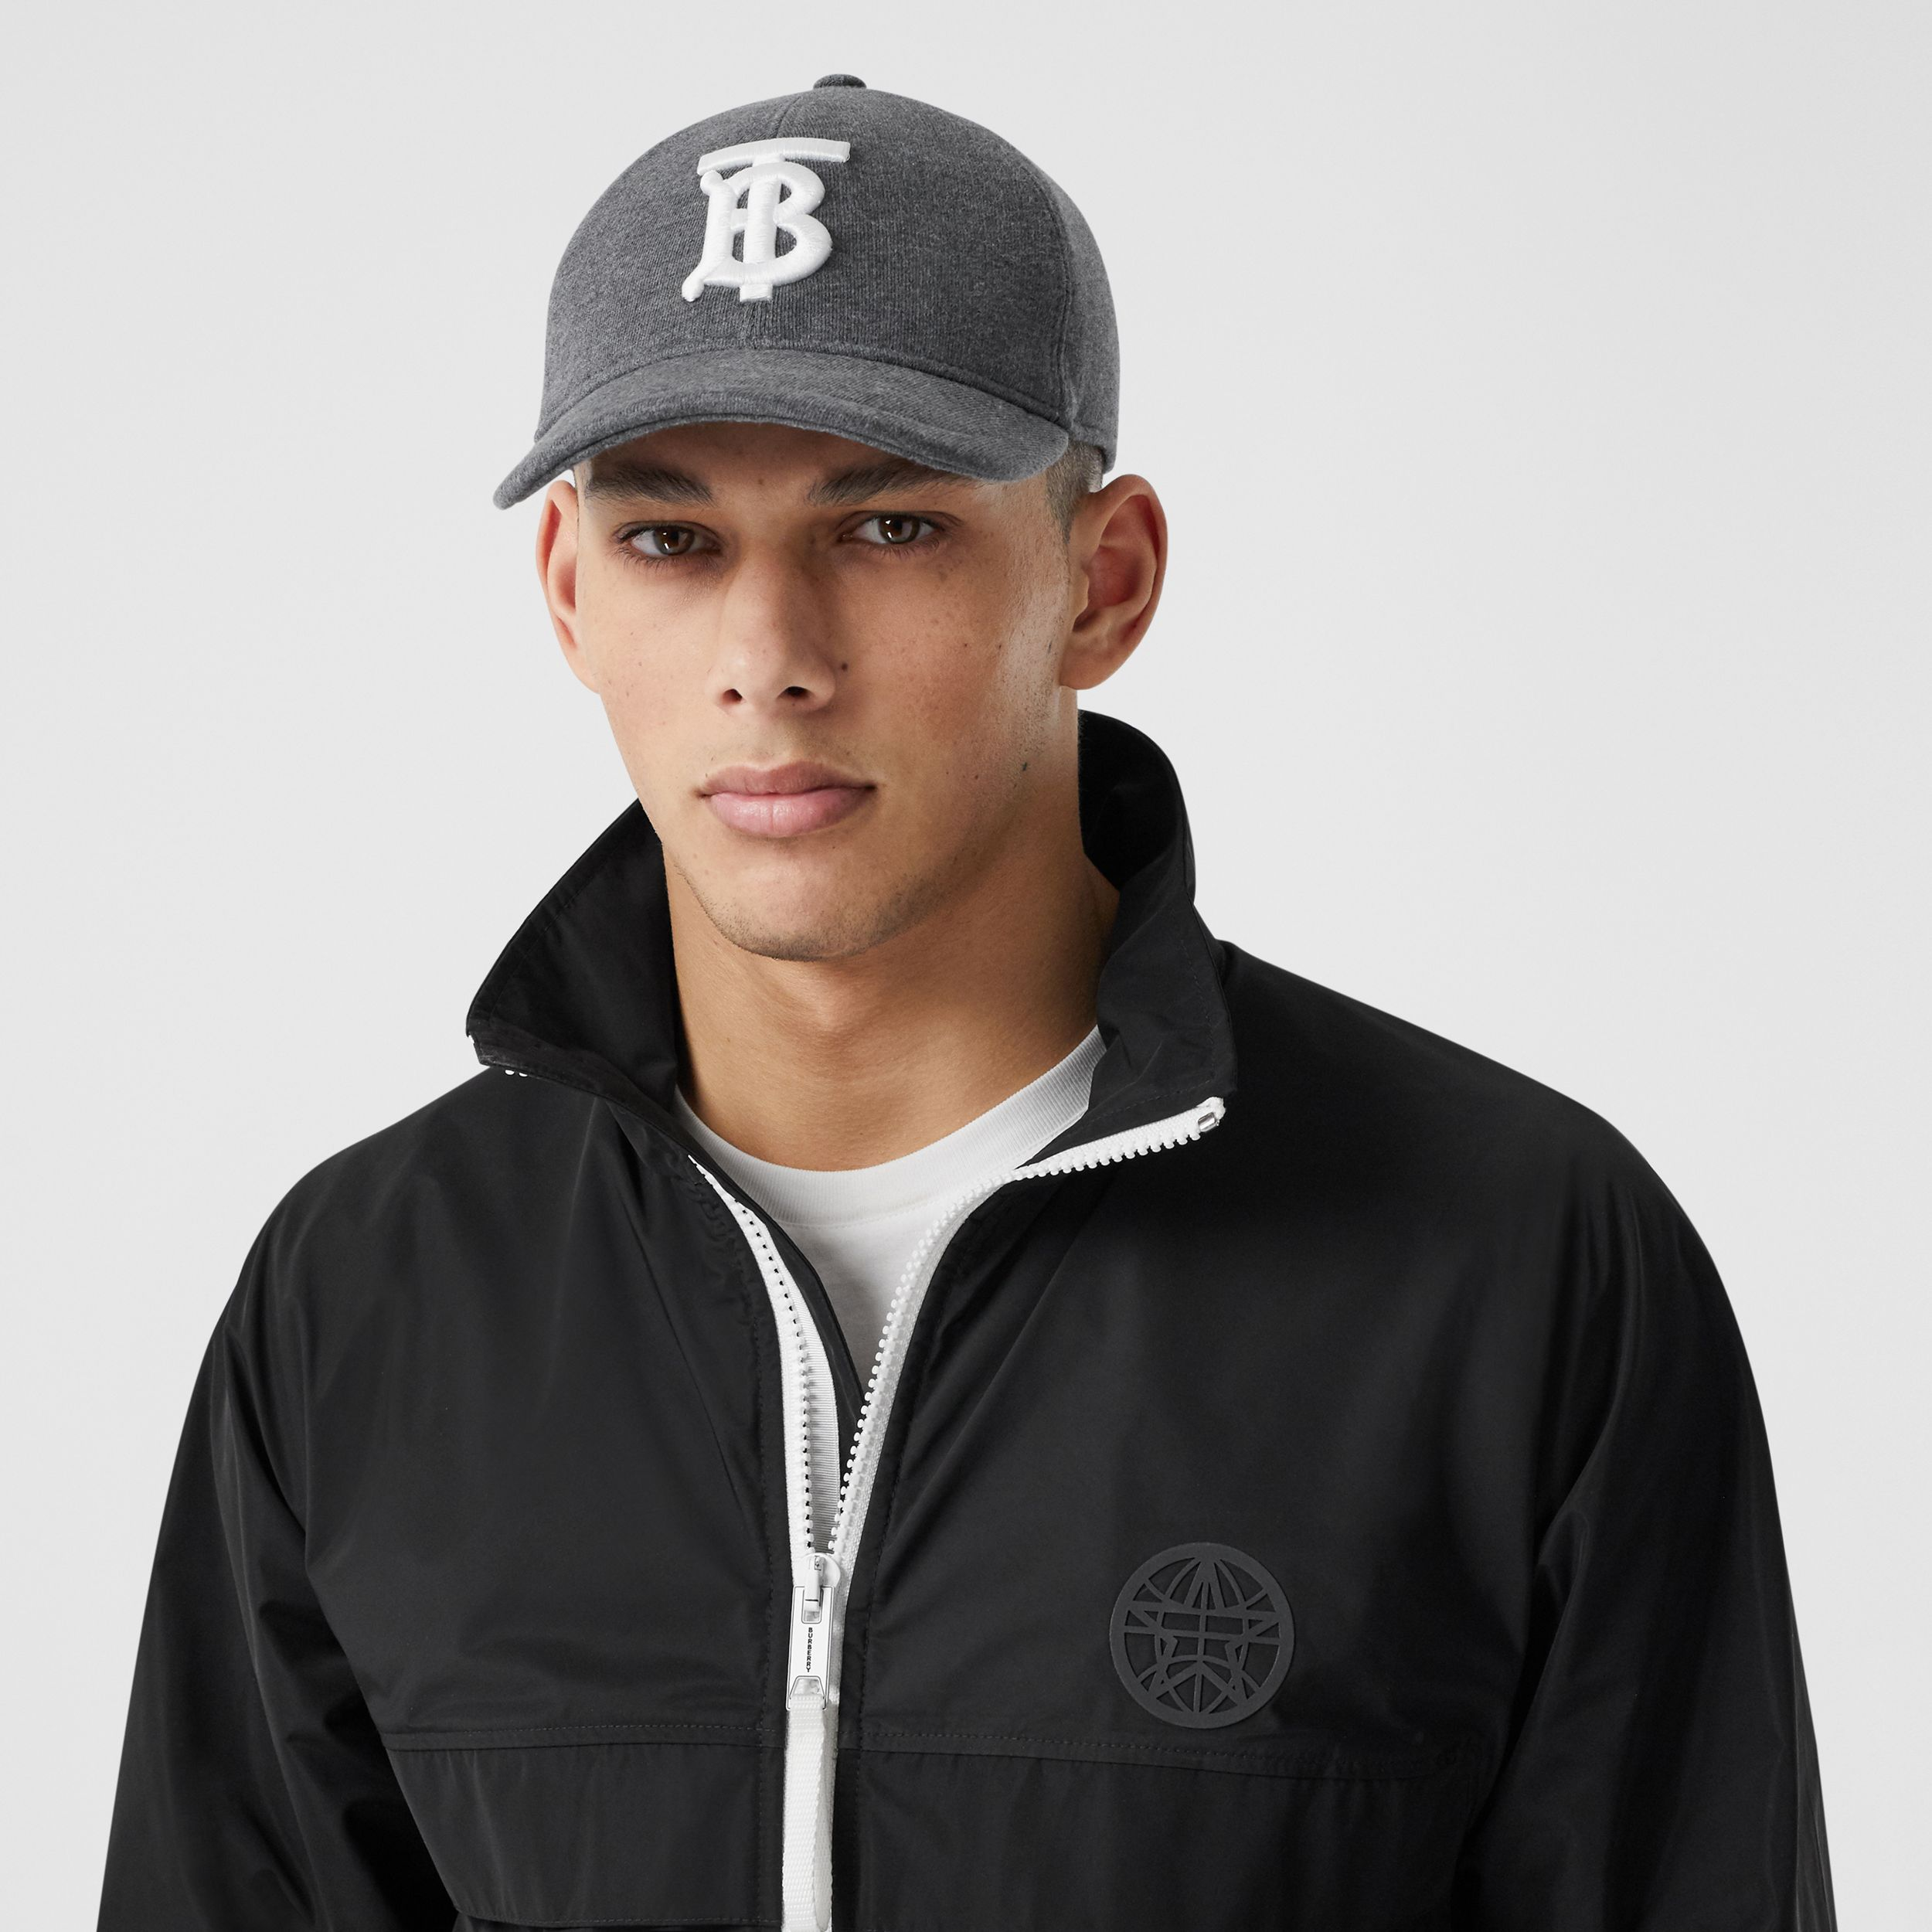 Monogram Motif Jersey Baseball Cap in Dark Charcoal | Burberry - 3